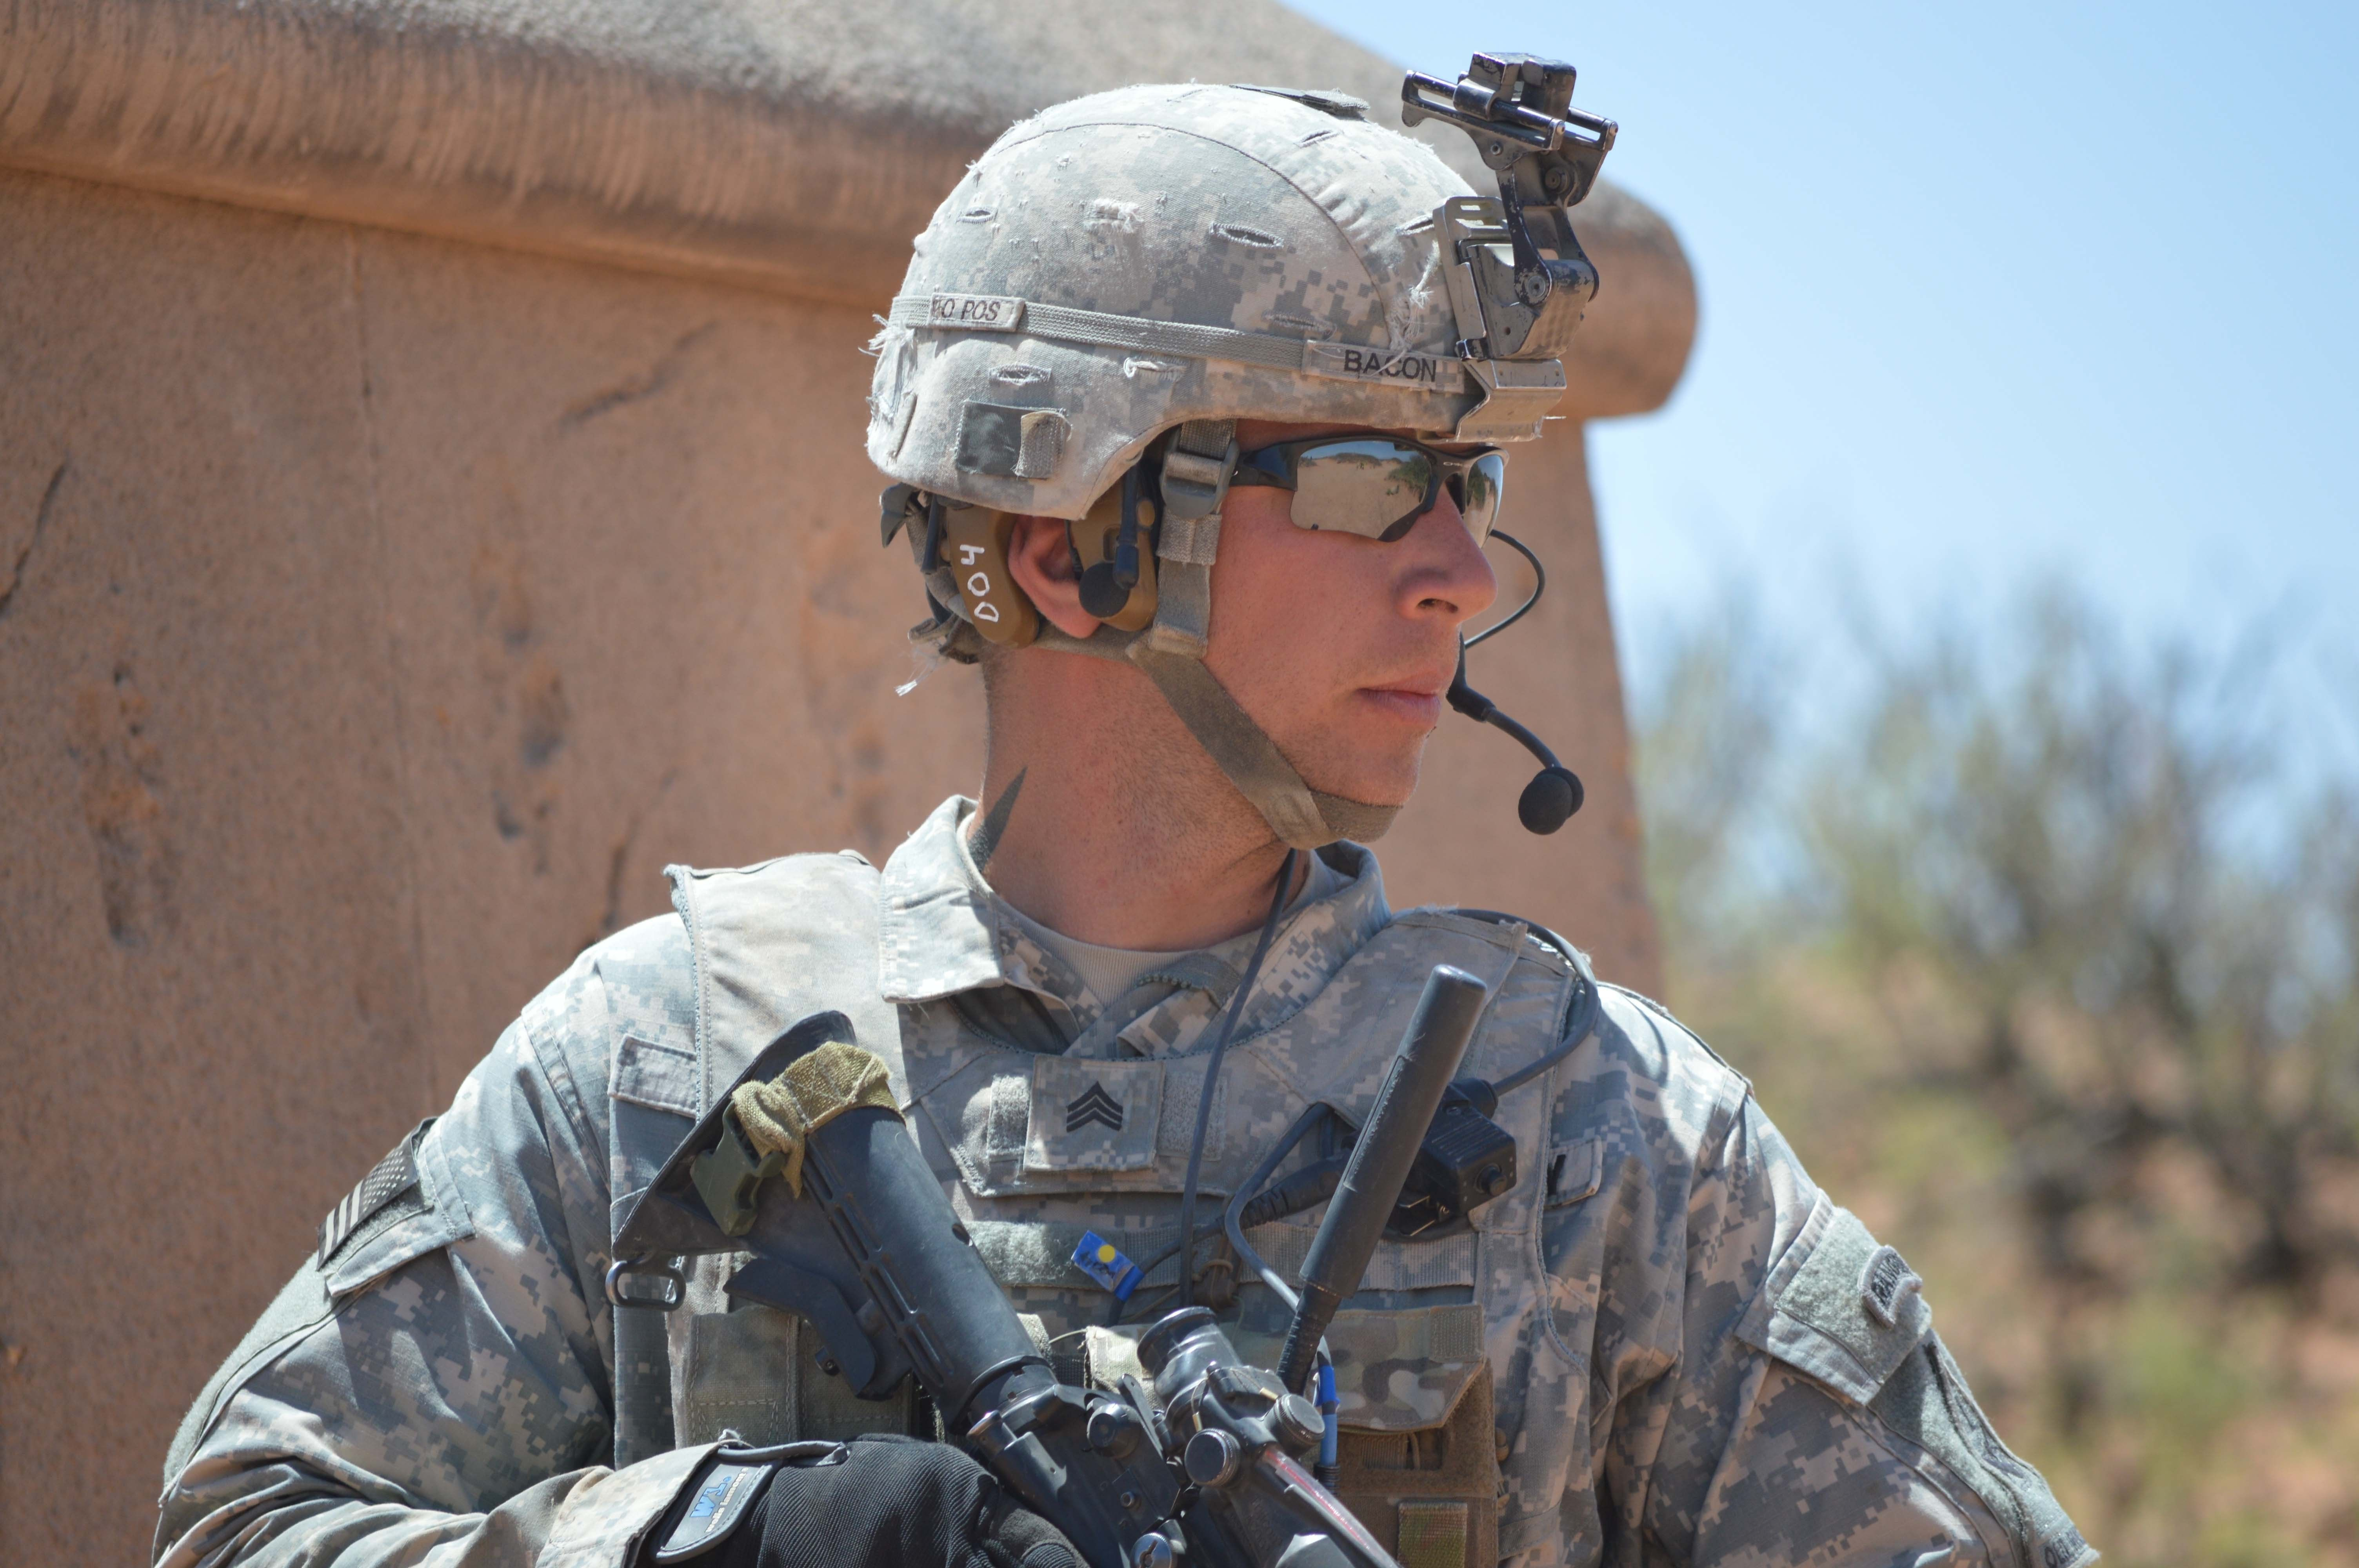 The U.S. Army Is Rolling Out Superhuman Hearing to Soldiers